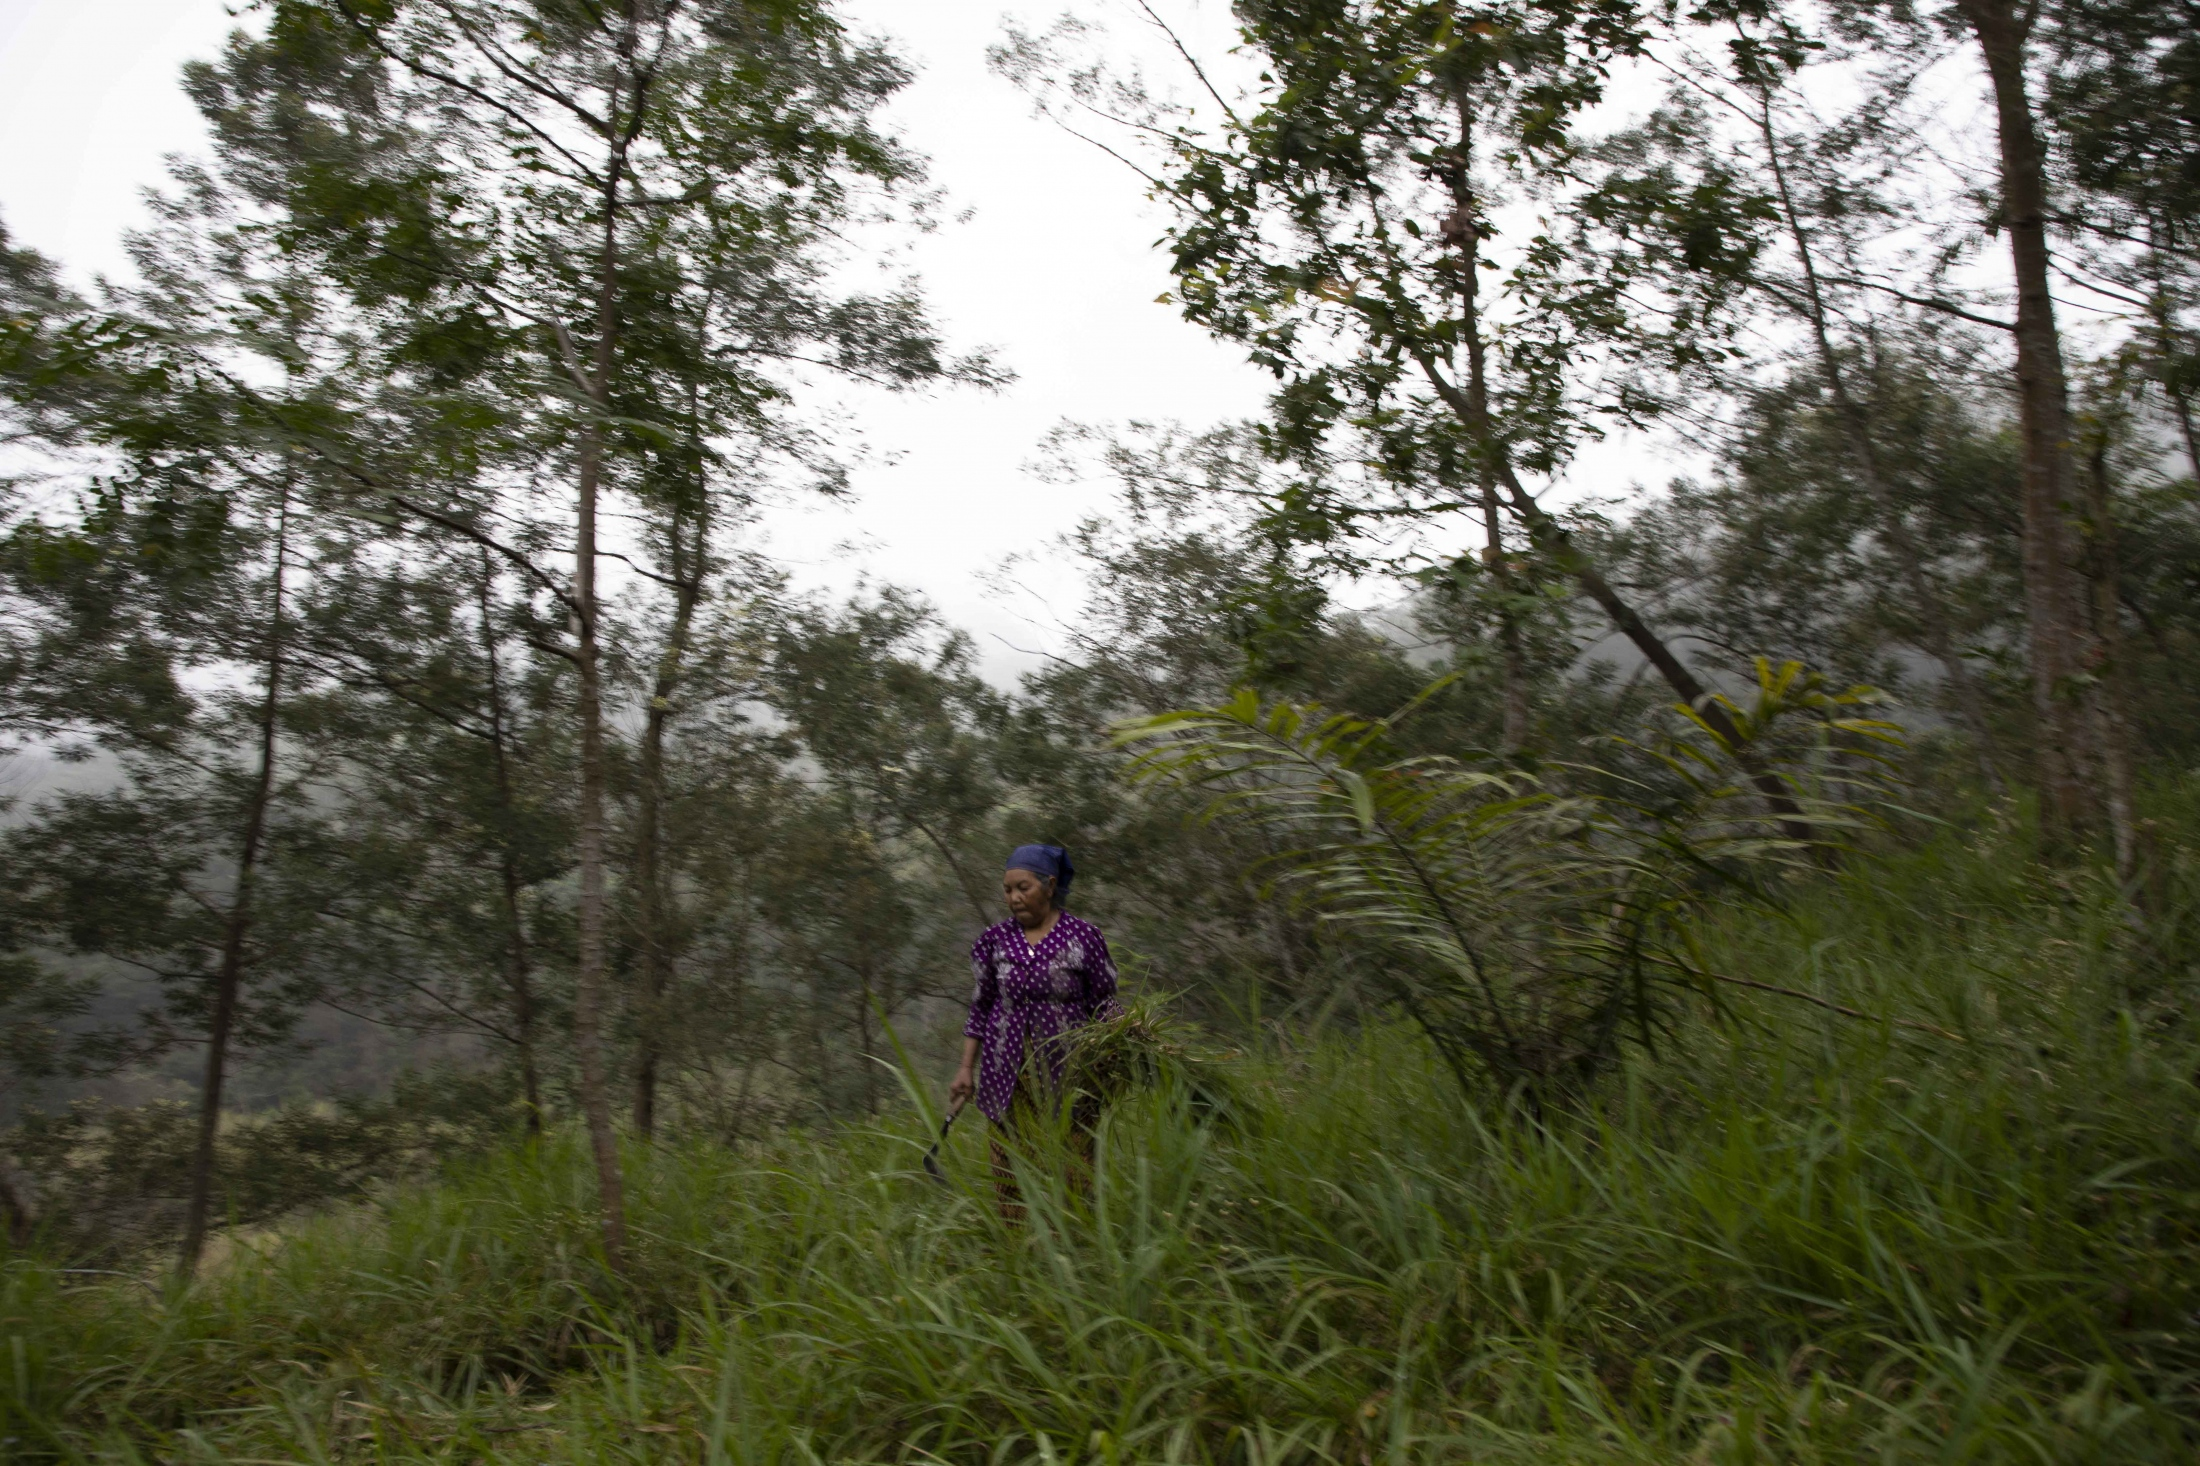 Mbah Sudiwiyono walking through the deep forest that surrounds her house. Each morning she collects cress for her two goat and the fire she lights to make charcoal.